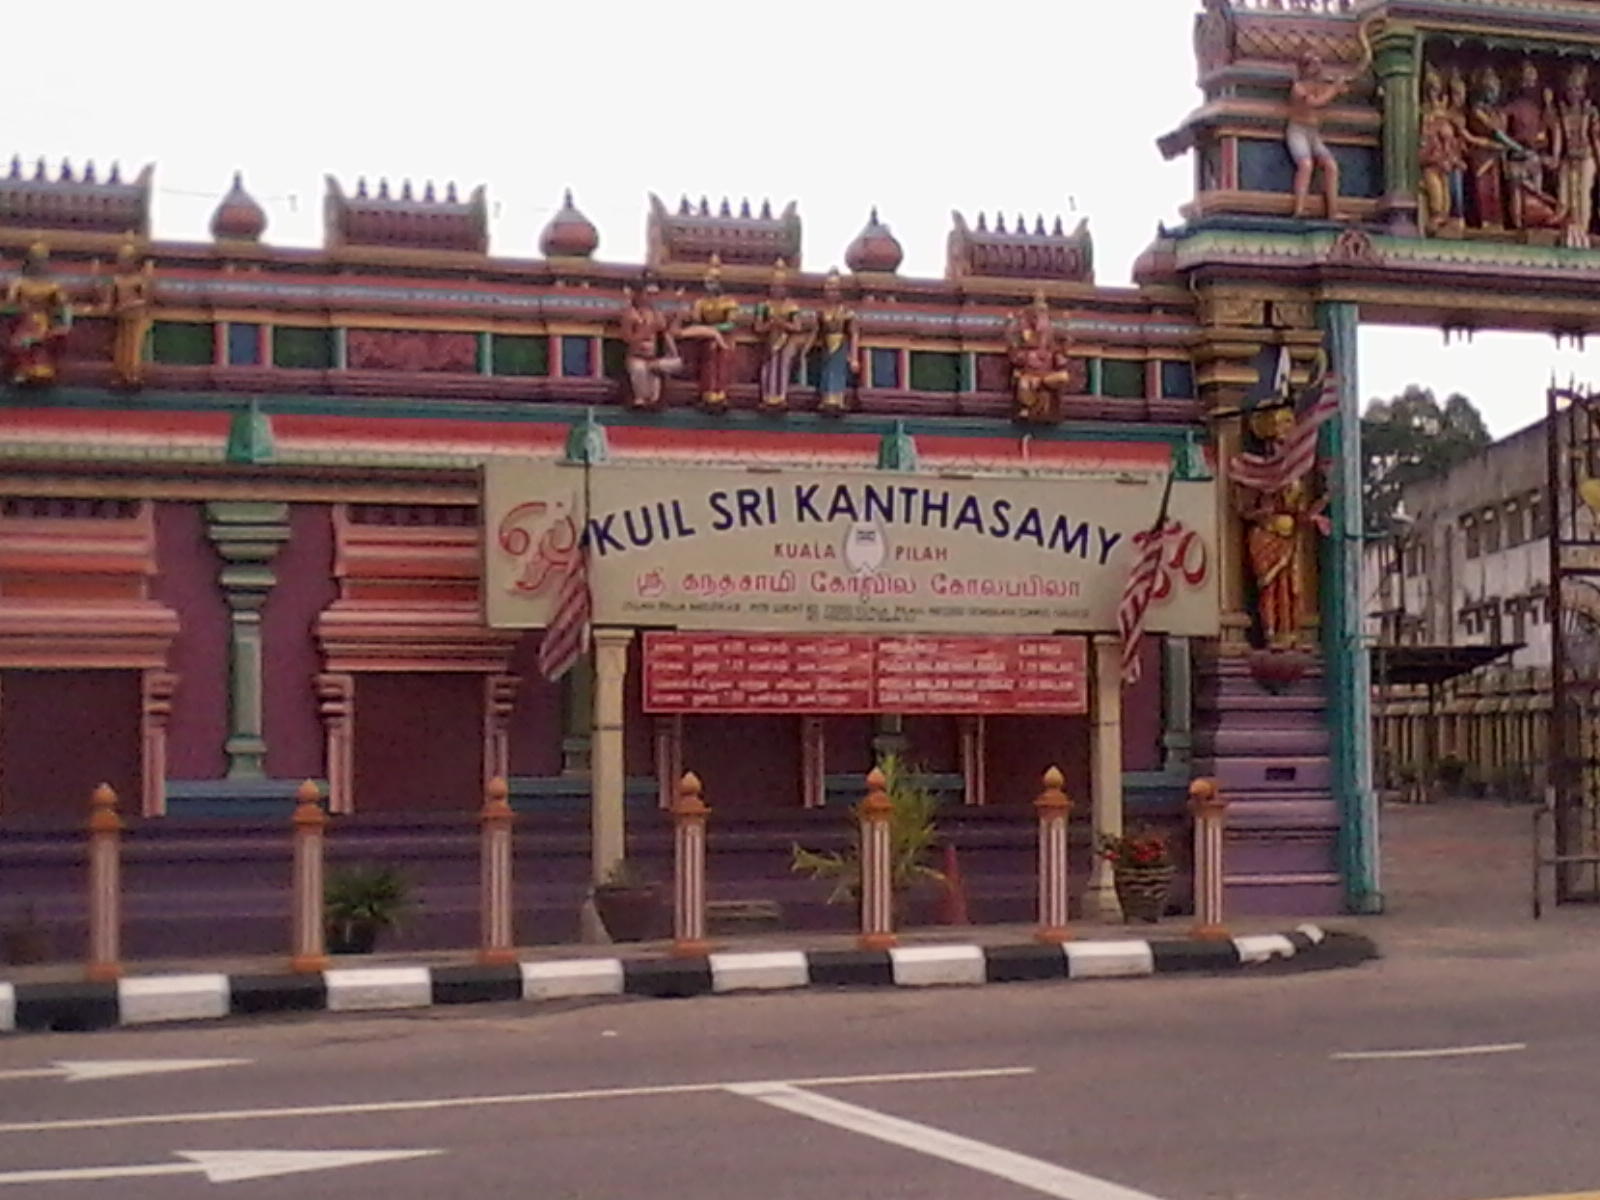 kuala pilah buddhist dating site Kuala pilah the home district of a buddhist temple of thai architecture that houses a 33 the site is today an expansive chinese cemetery with many of the.